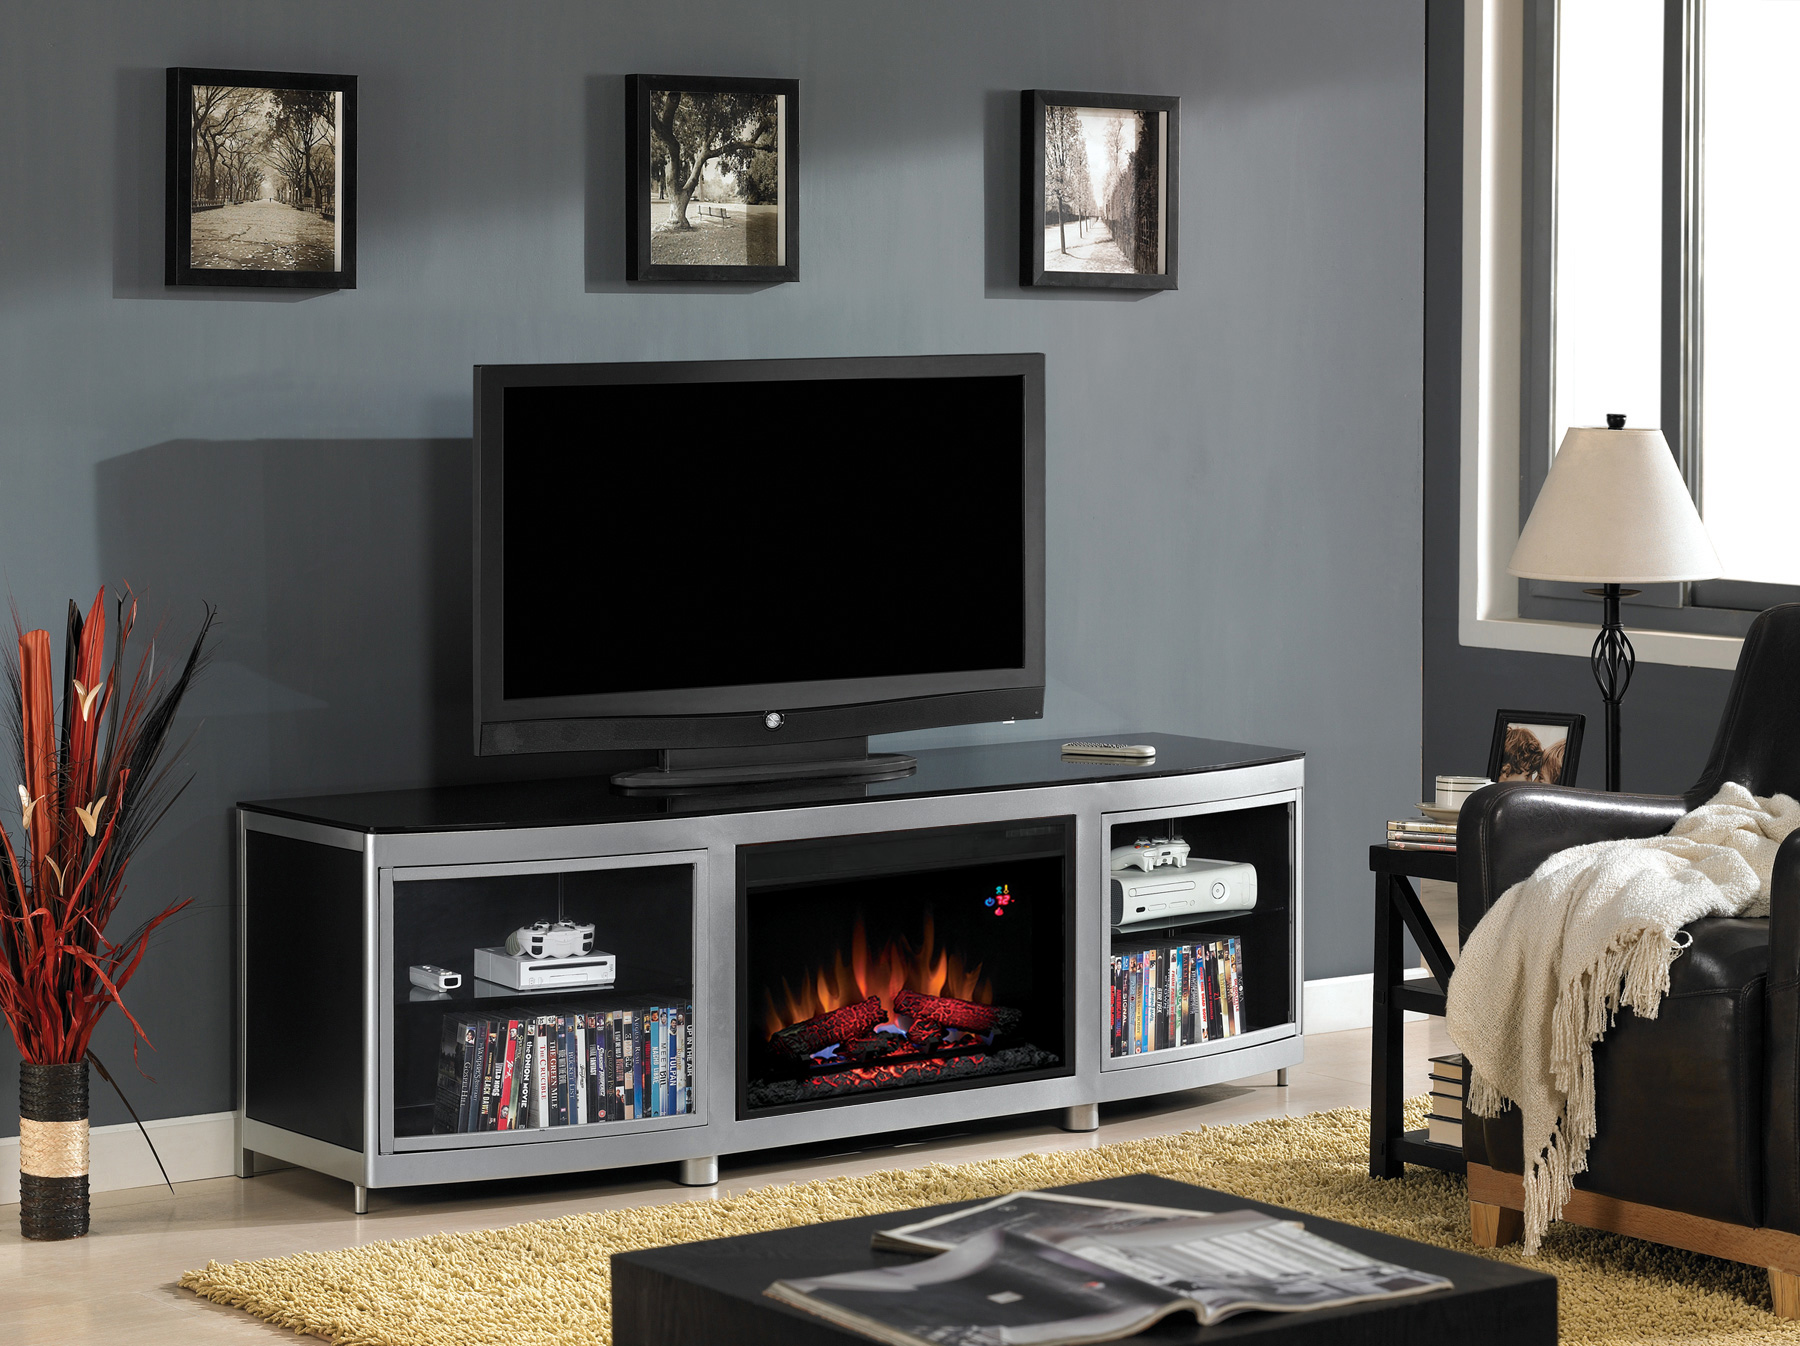 Gotham 26 Black Media Console Electric Fireplace Cabinet Mantel 26mm9313 D974